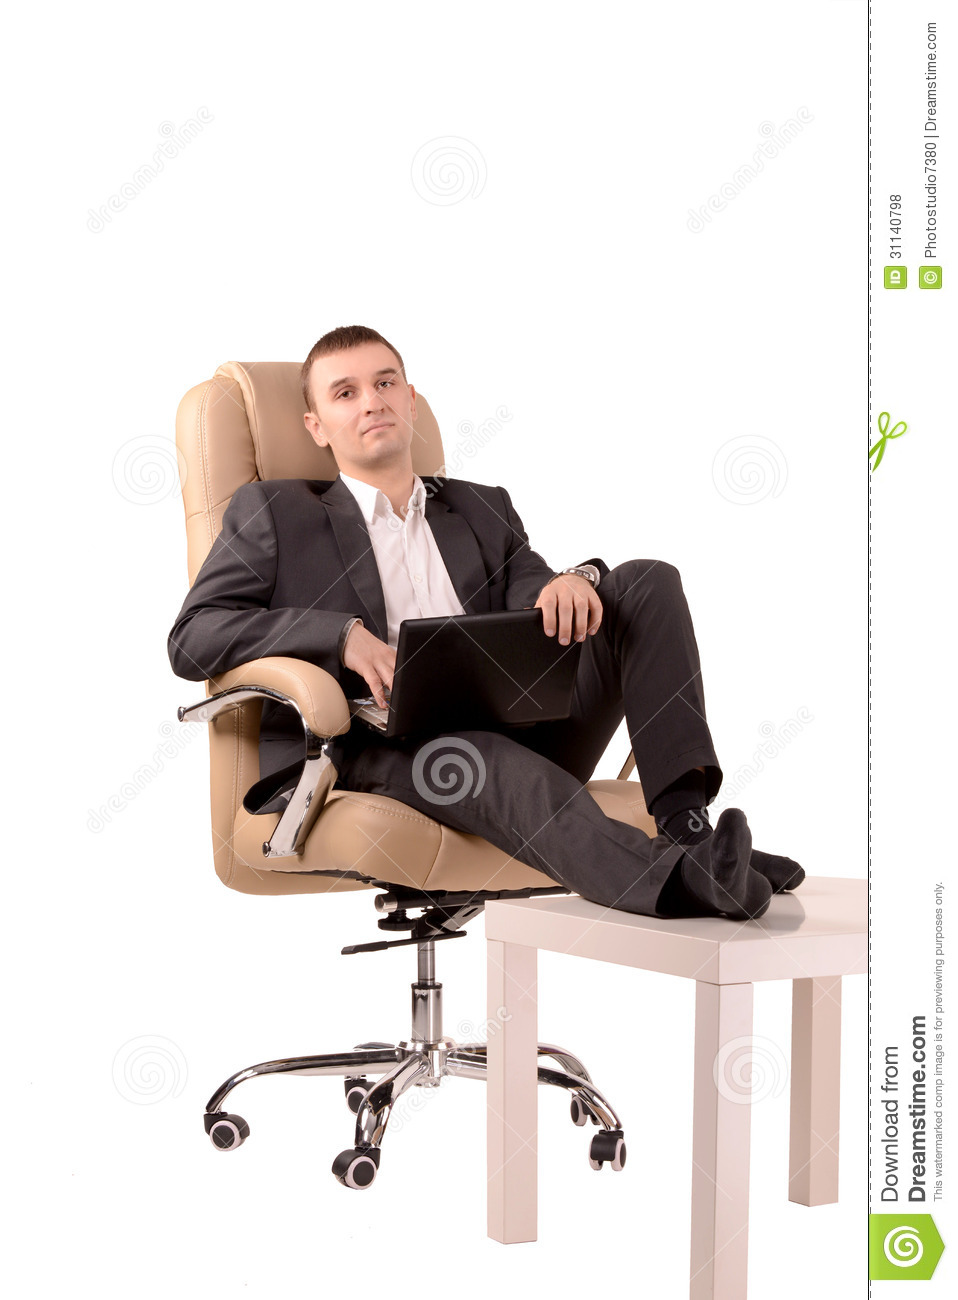 Man Sitting In A Chair Royalty Free Stock Photos Image